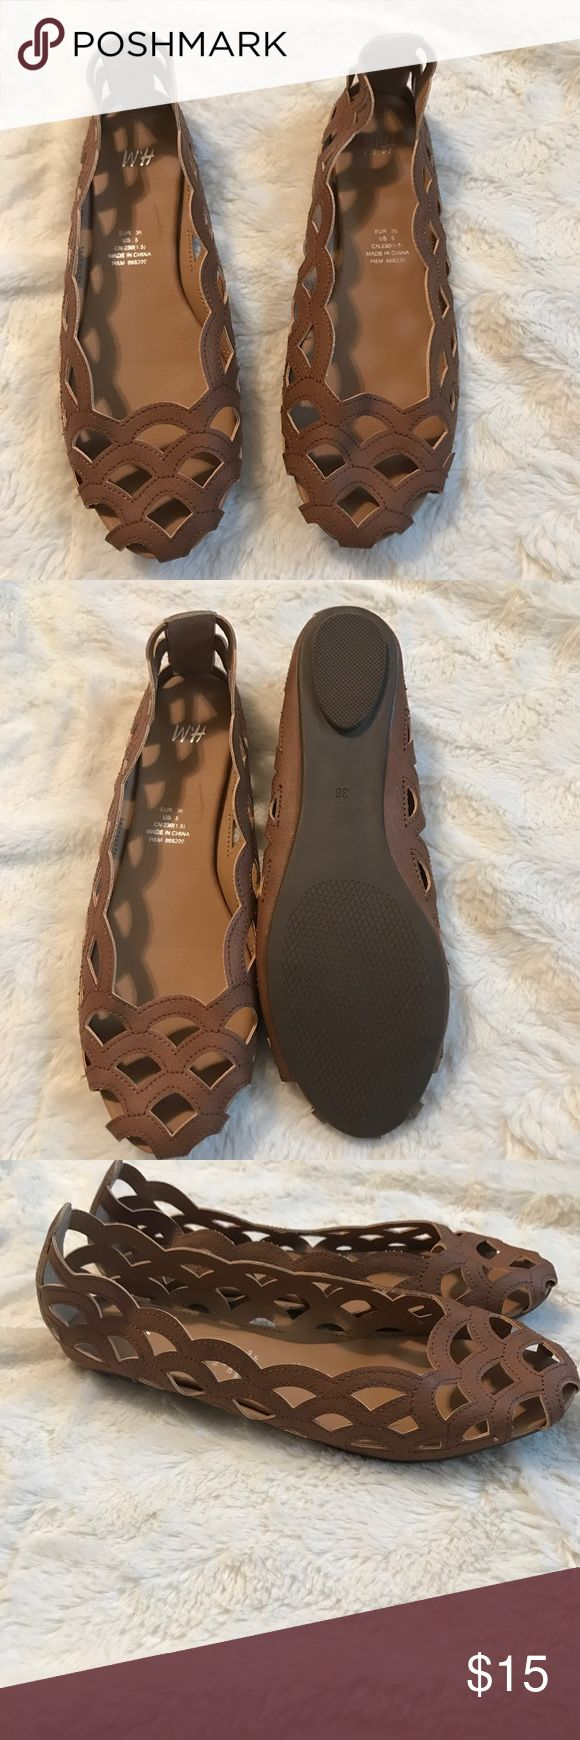 "H&M brown flat shoes size 5 NWOT Brand new, got the wrong size :( , ready to ship! 9"" shoe length, ready to ship! Check out my closet! H&M Shoes Flats & Loafers"